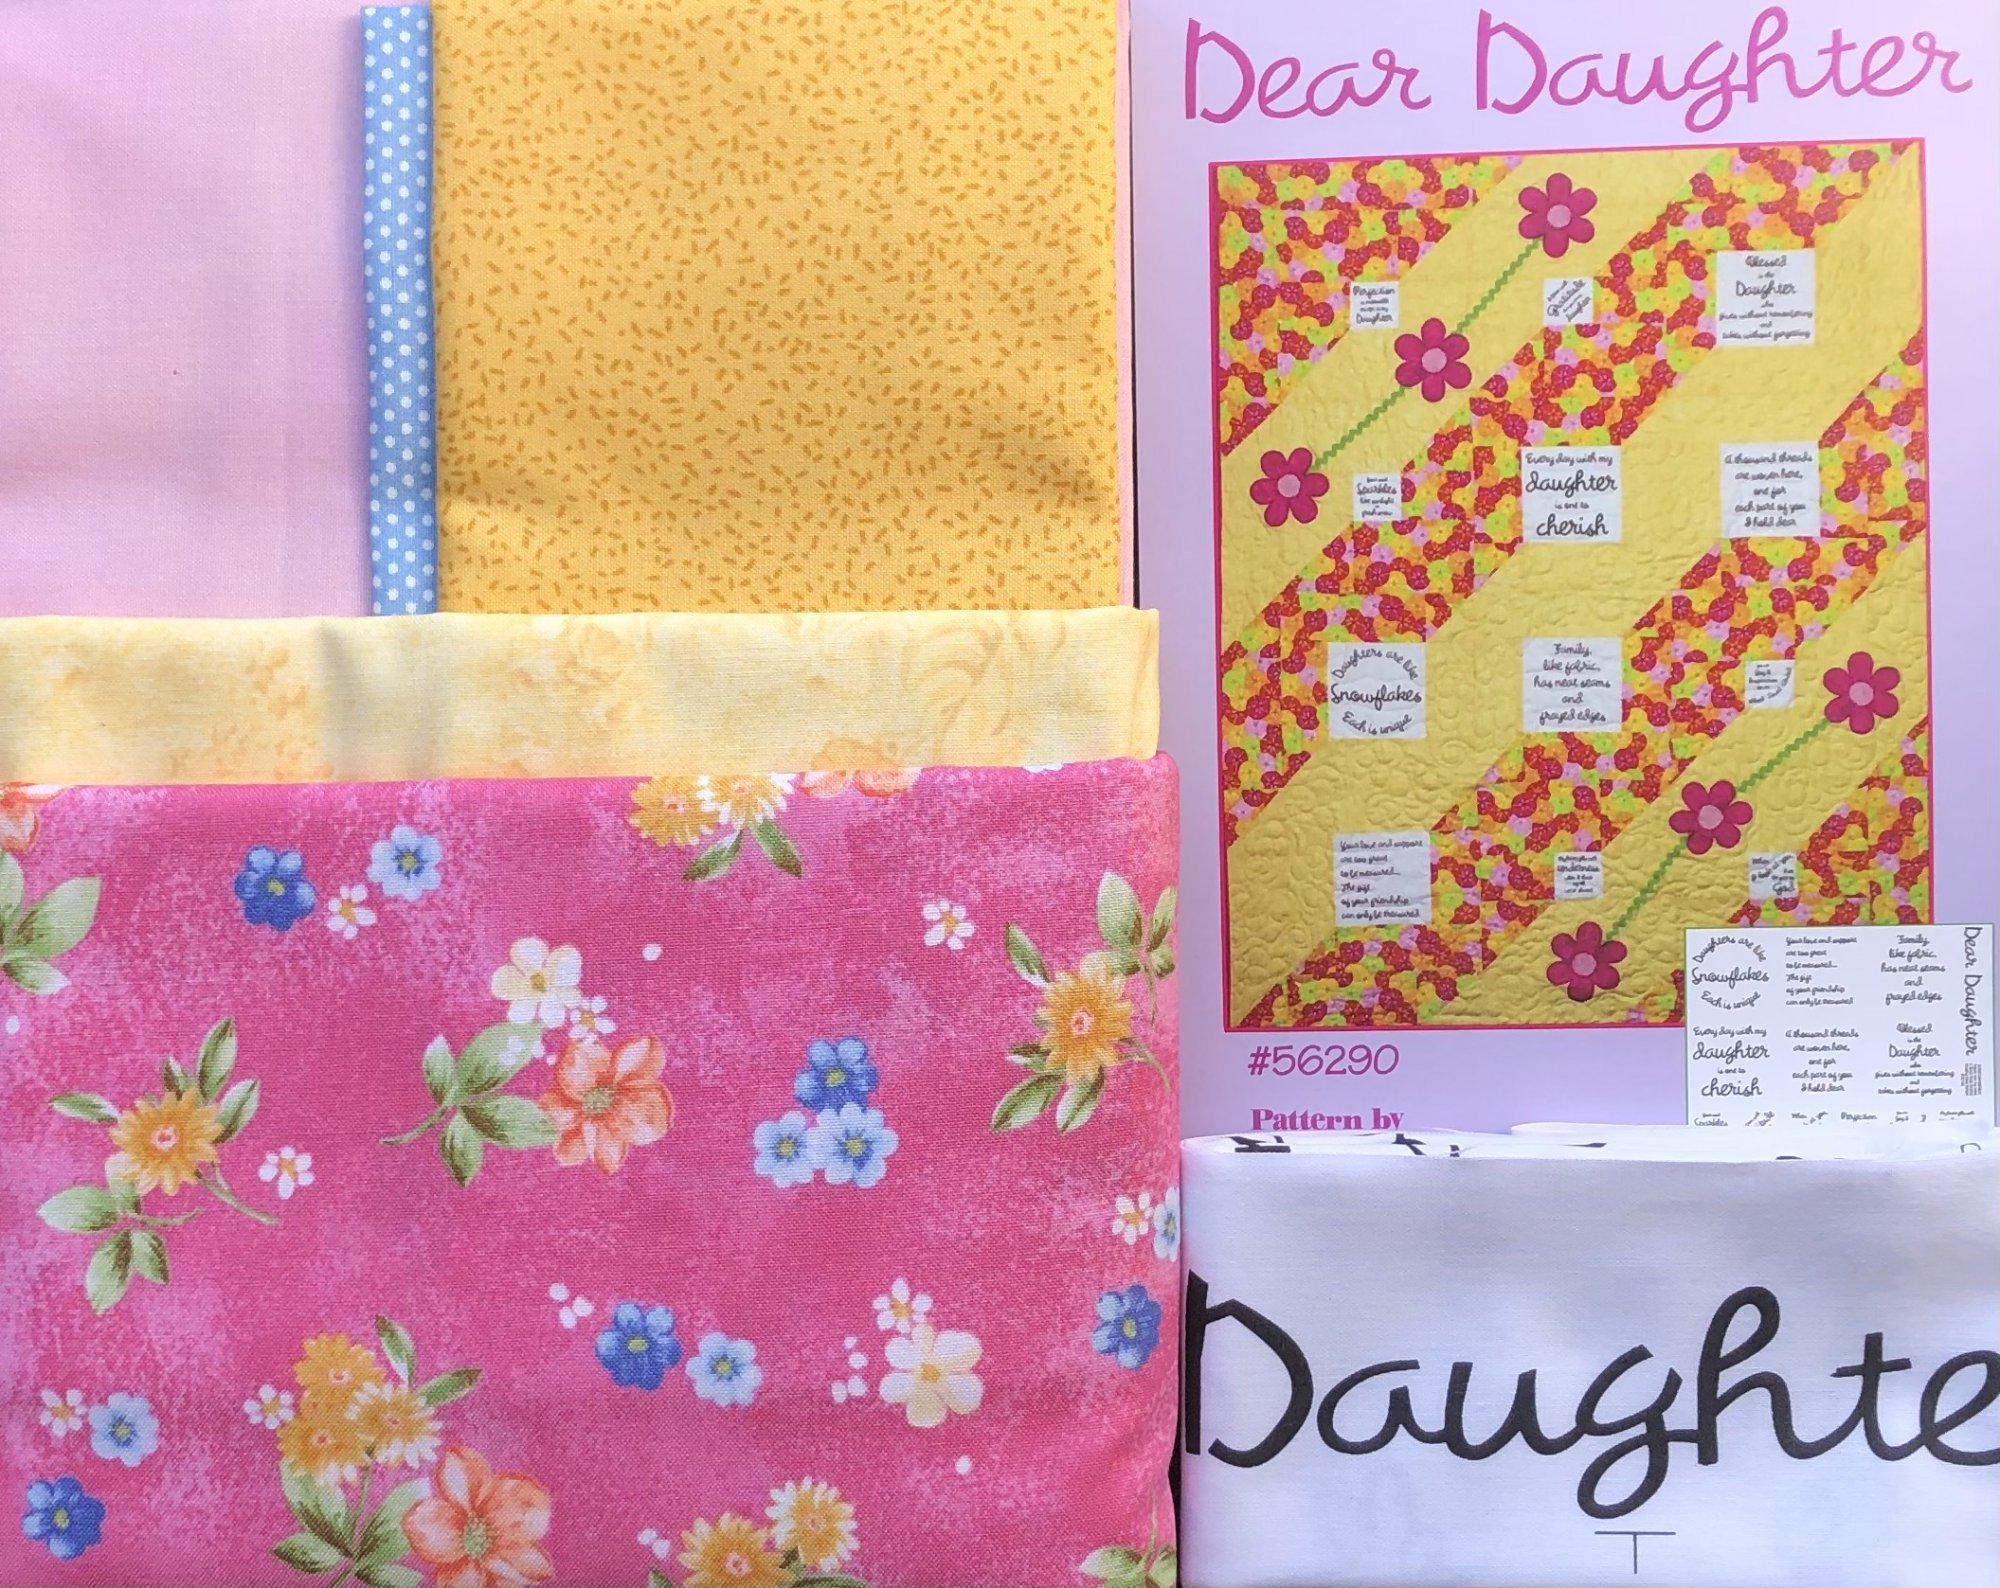 Dear Daughter Quilt Kit